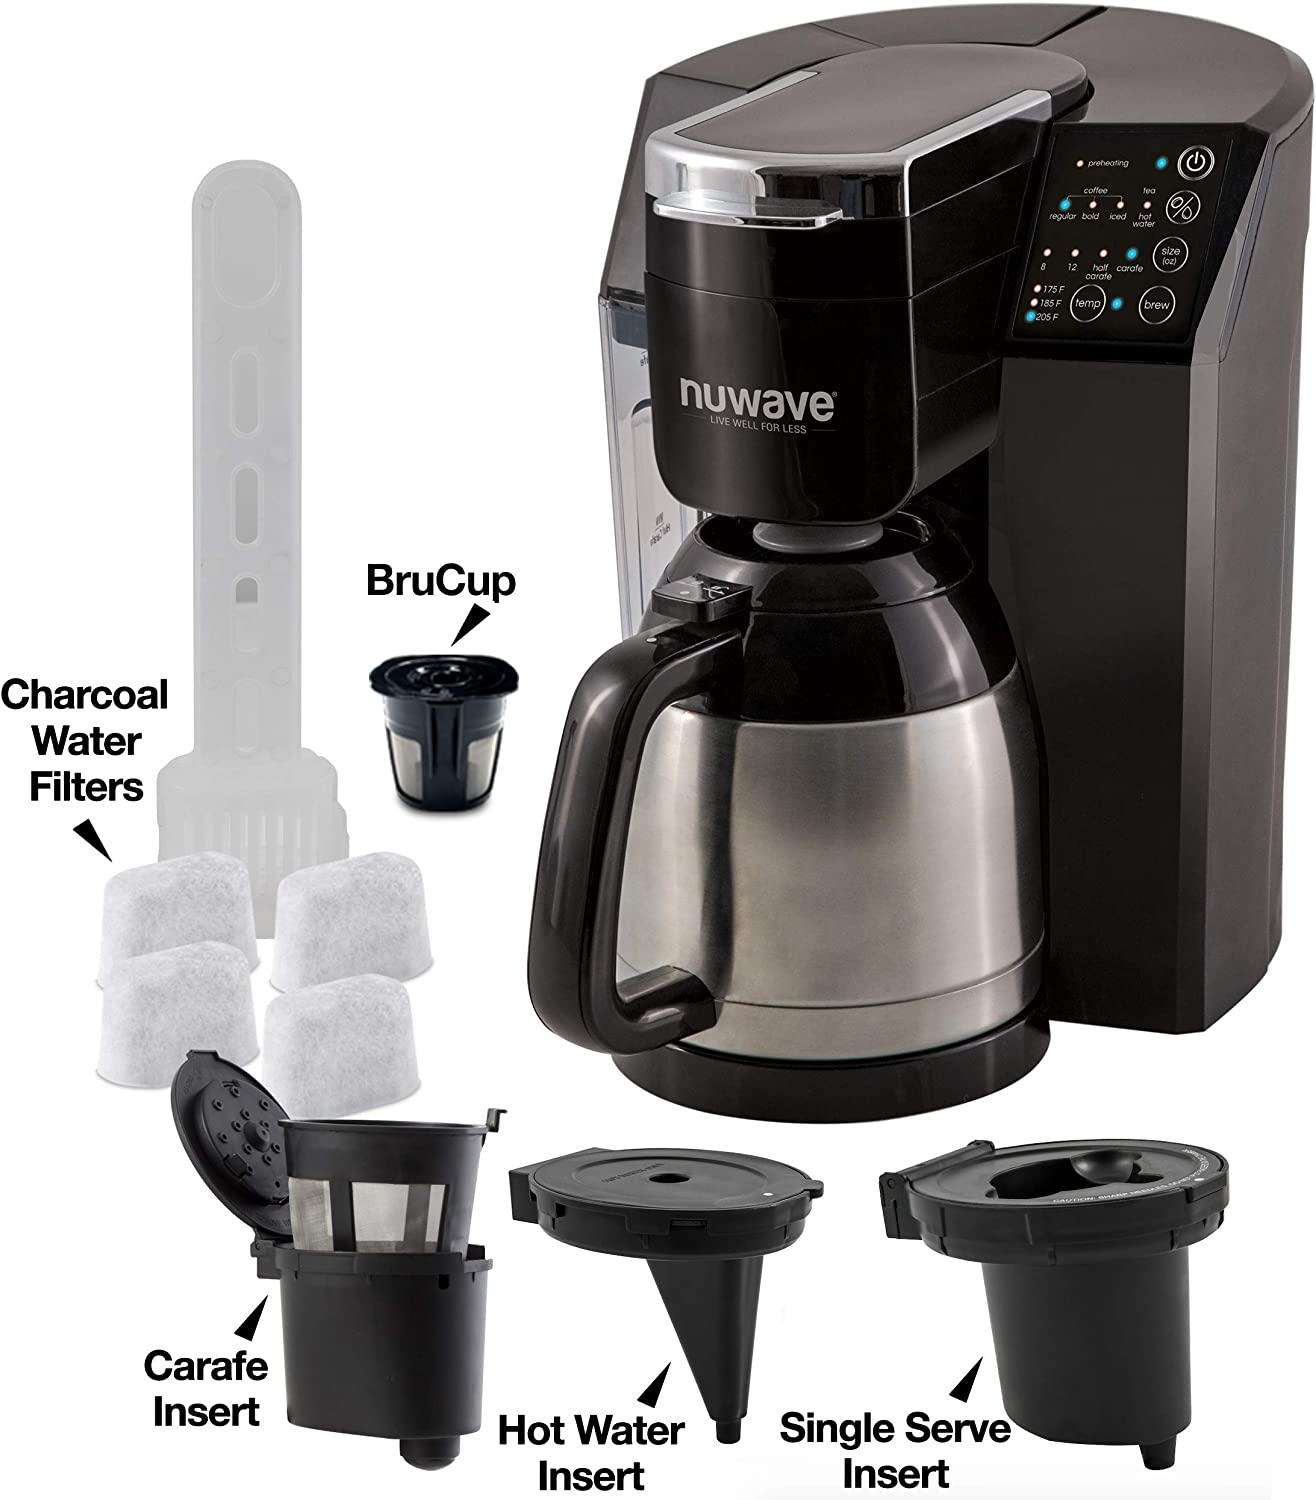 NUWAVE BRUHUB ULTIMATE 3-in-1 coffee system with 3 inserts, reusable BruCup, 3 strength settings, 4 charcoal filters, temperature control & vacuum insulated stainless-steel double-walled carafe